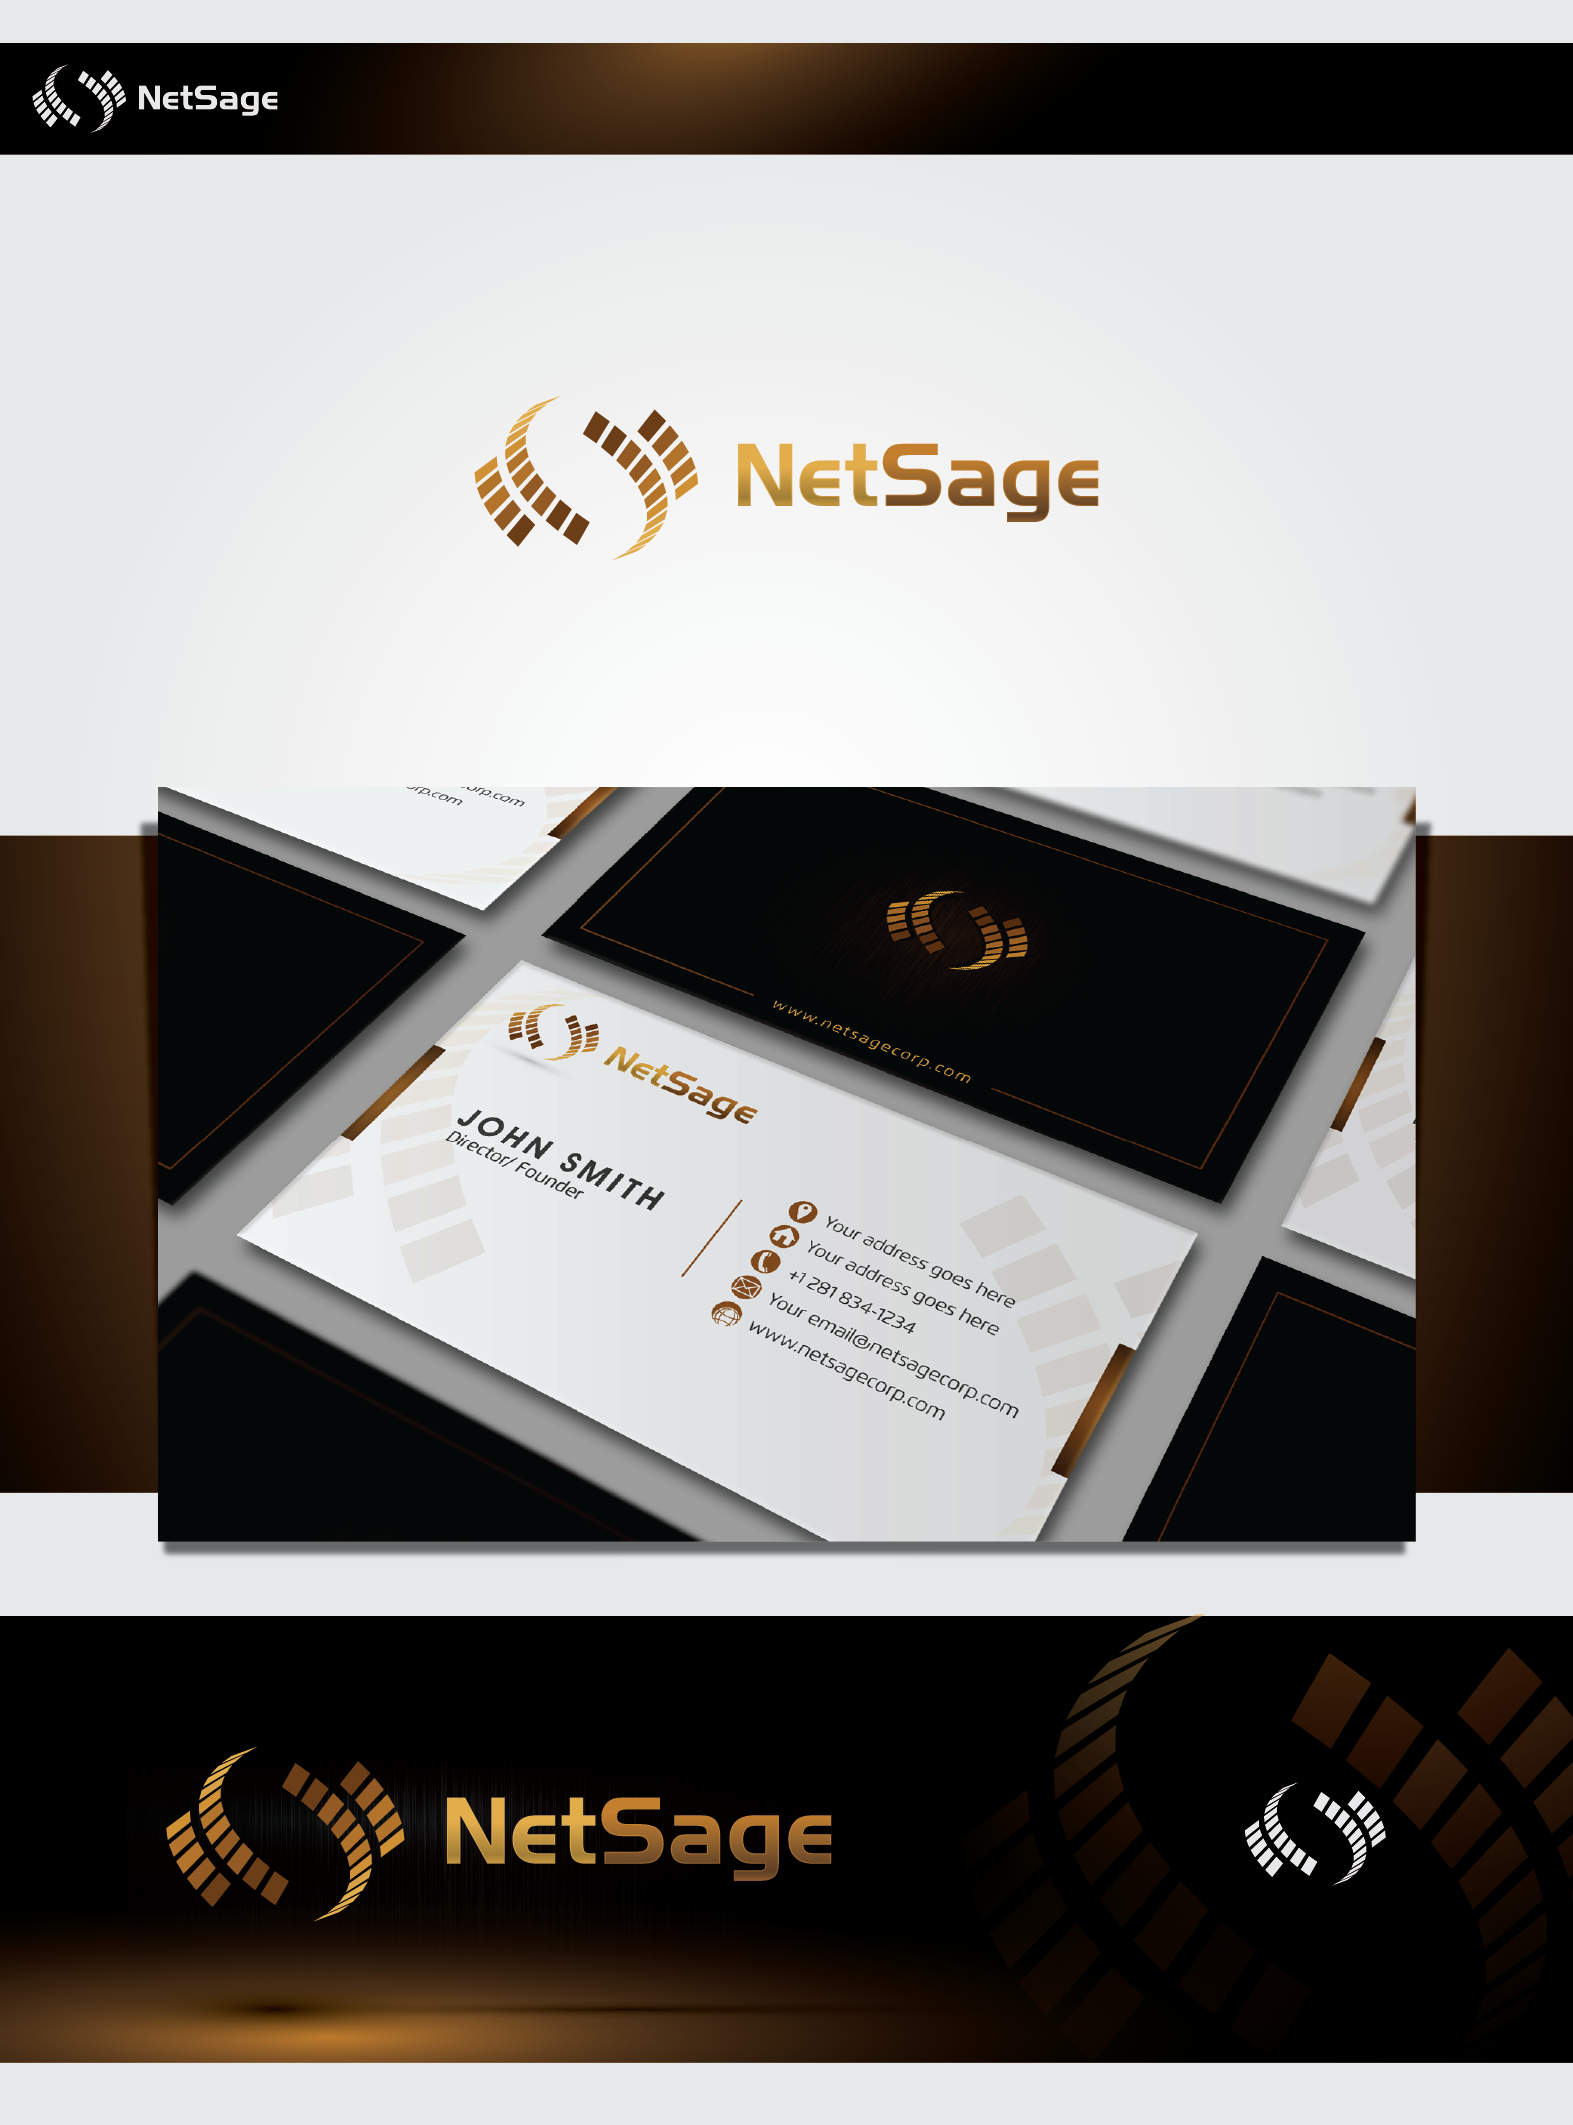 Create the next logo and business card for NetSage